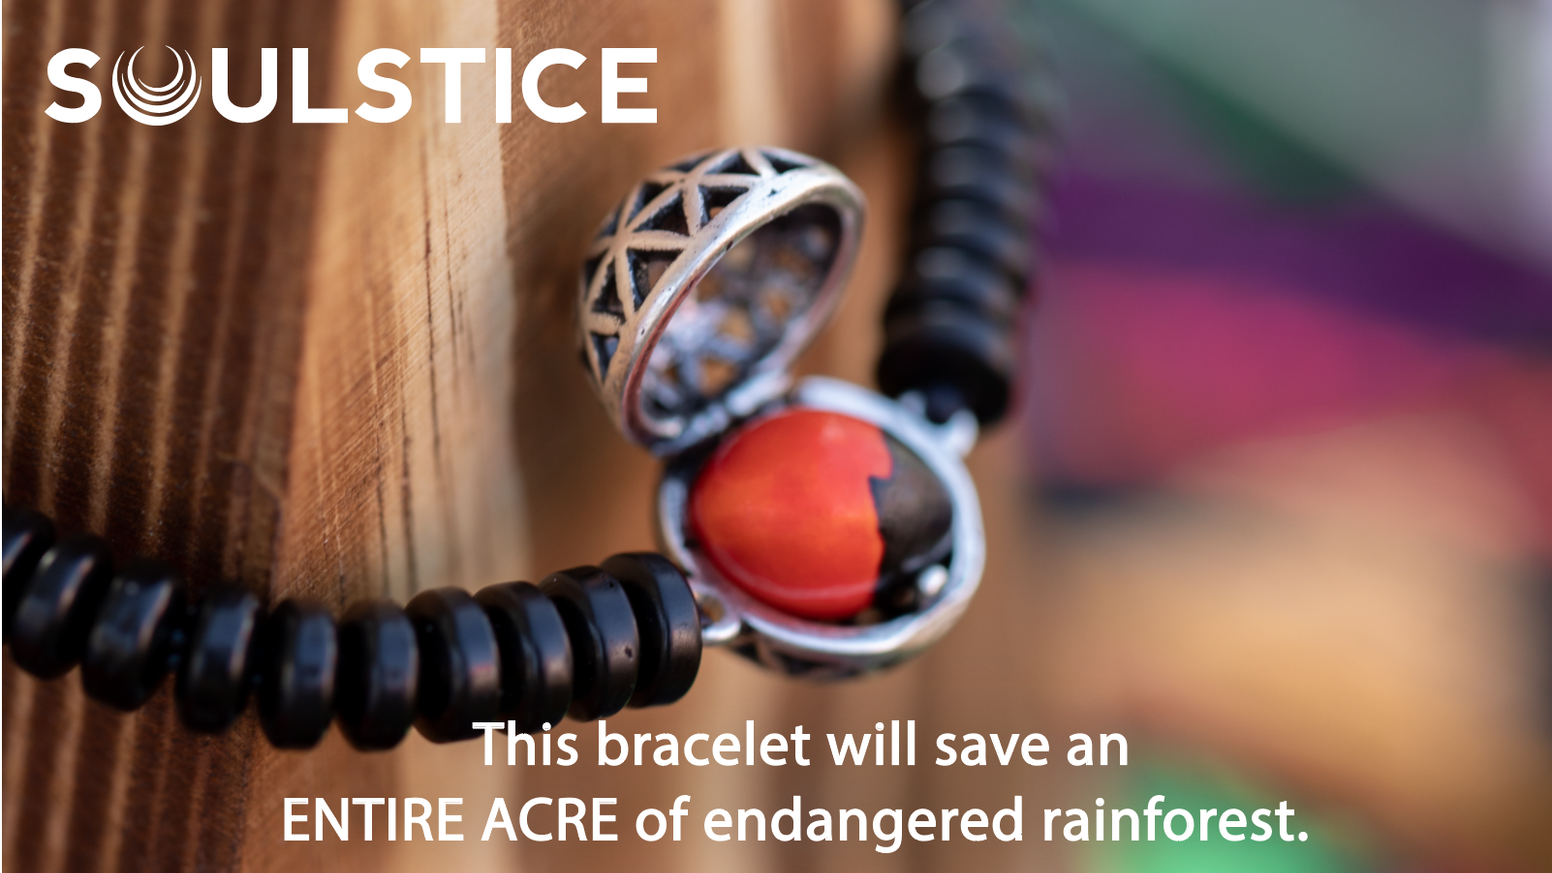 Our campaign has ended, but you can still support our mission by buying a bracelet below!